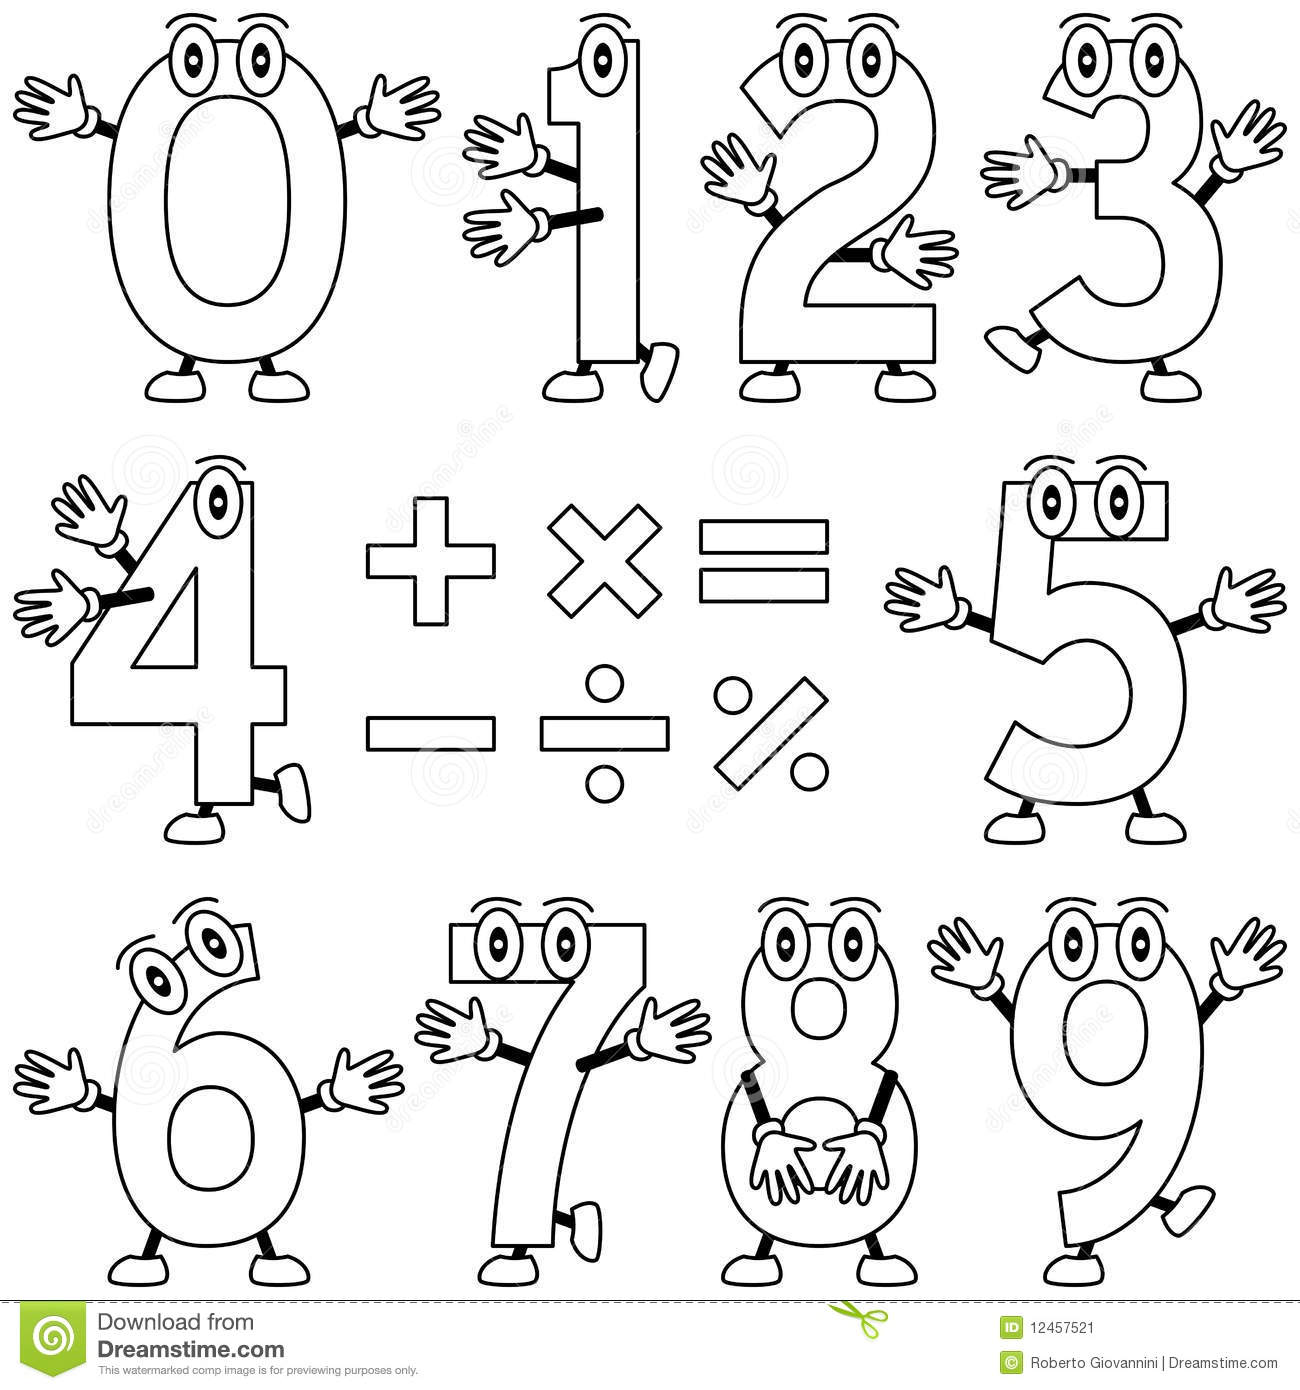 cartoon numbers coloring pages - photo#12